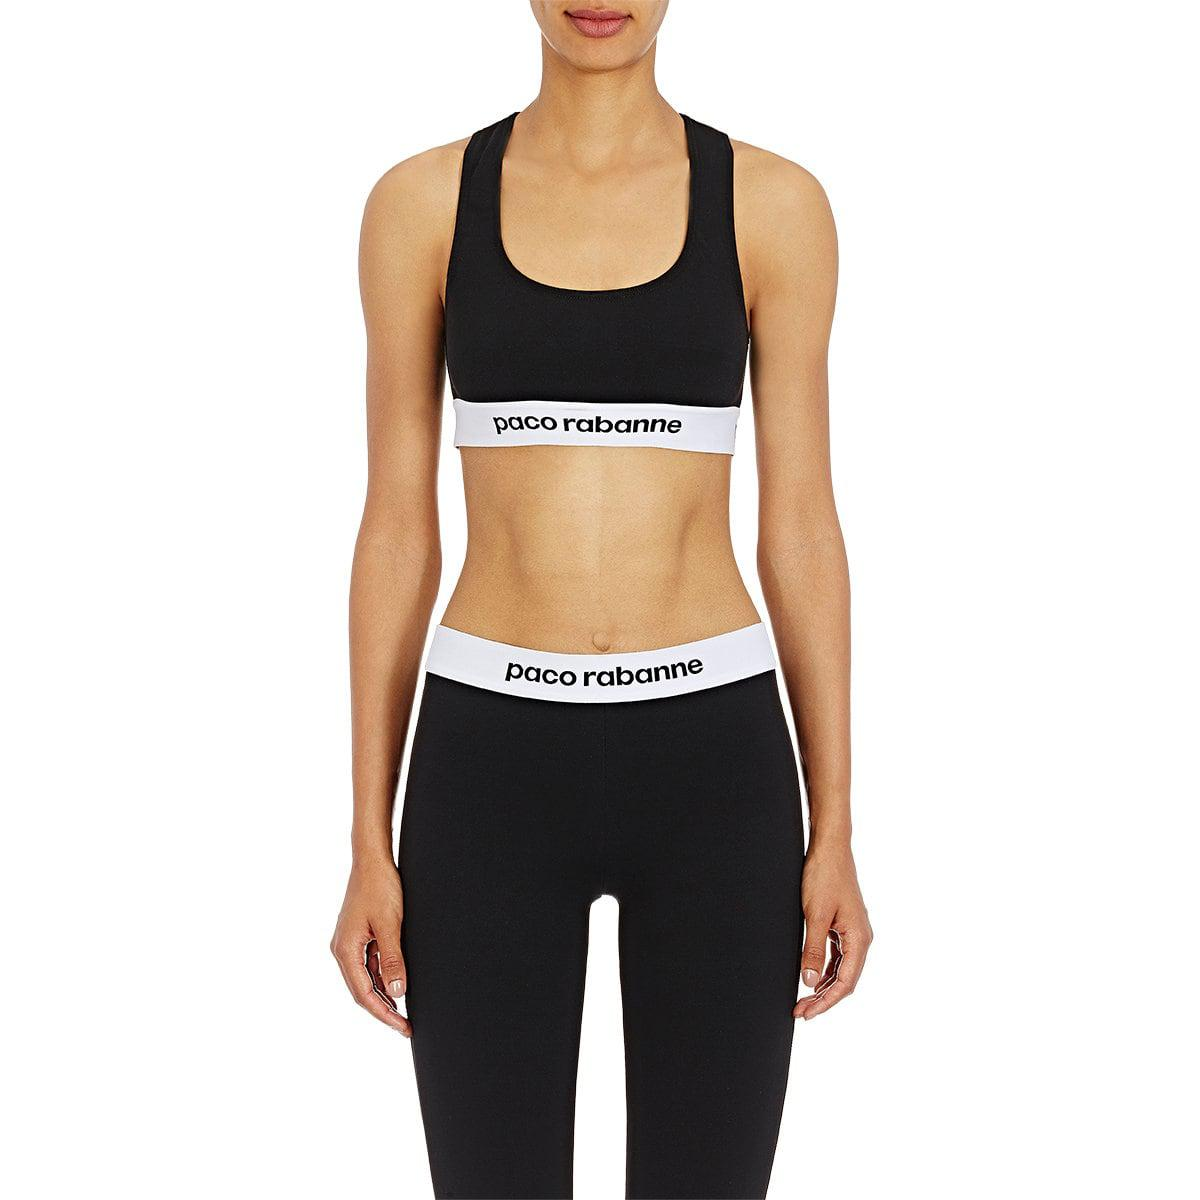 For Sale Buy Authentic Online Womens Logo Sports Bra Paco Rabanne Free Shipping Prices Best Store To Get For Sale S6AH6SOyfc